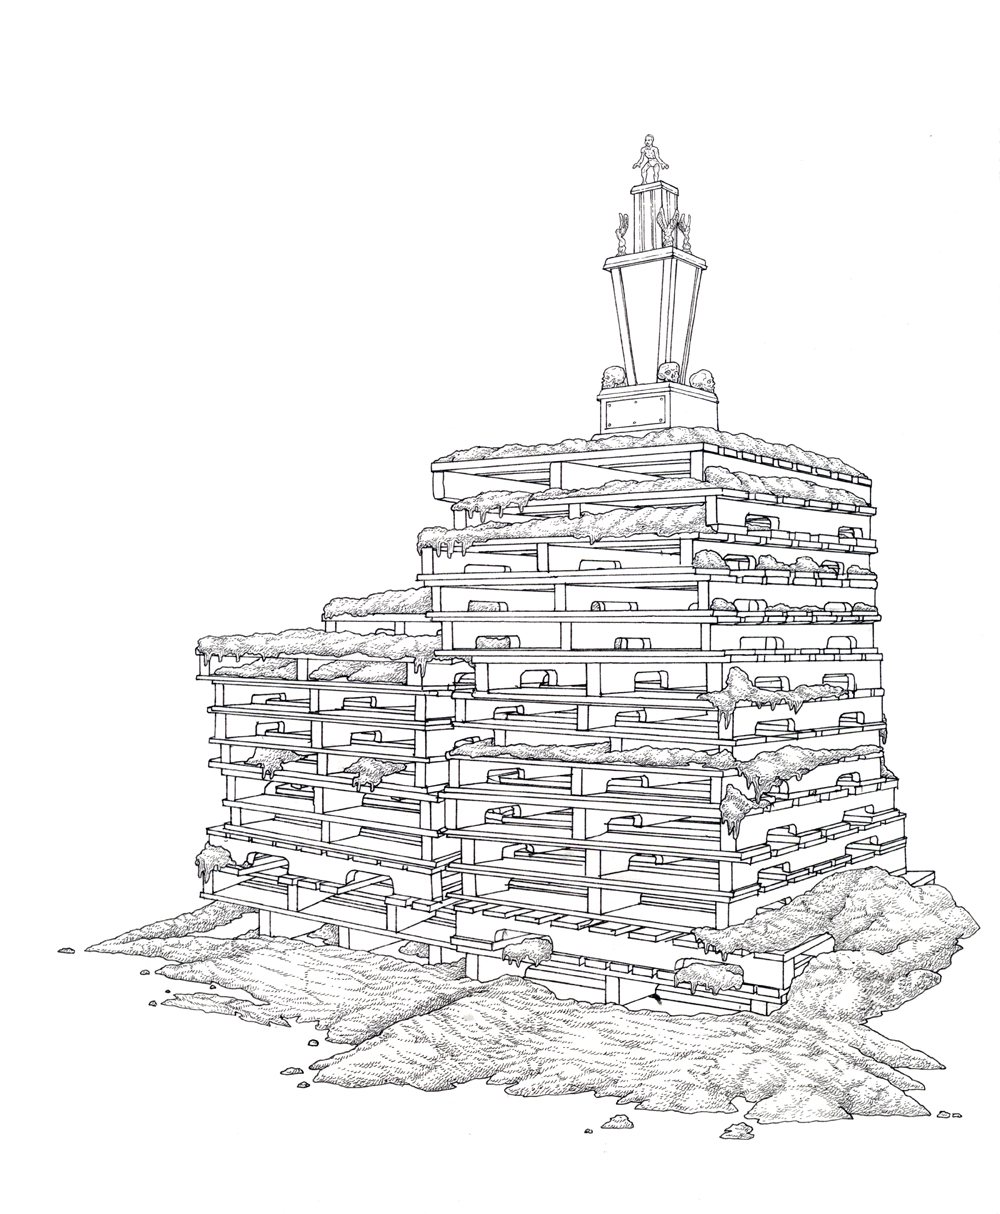 stacked pallets, ink on paper, 8.5in. x 7in., 2009